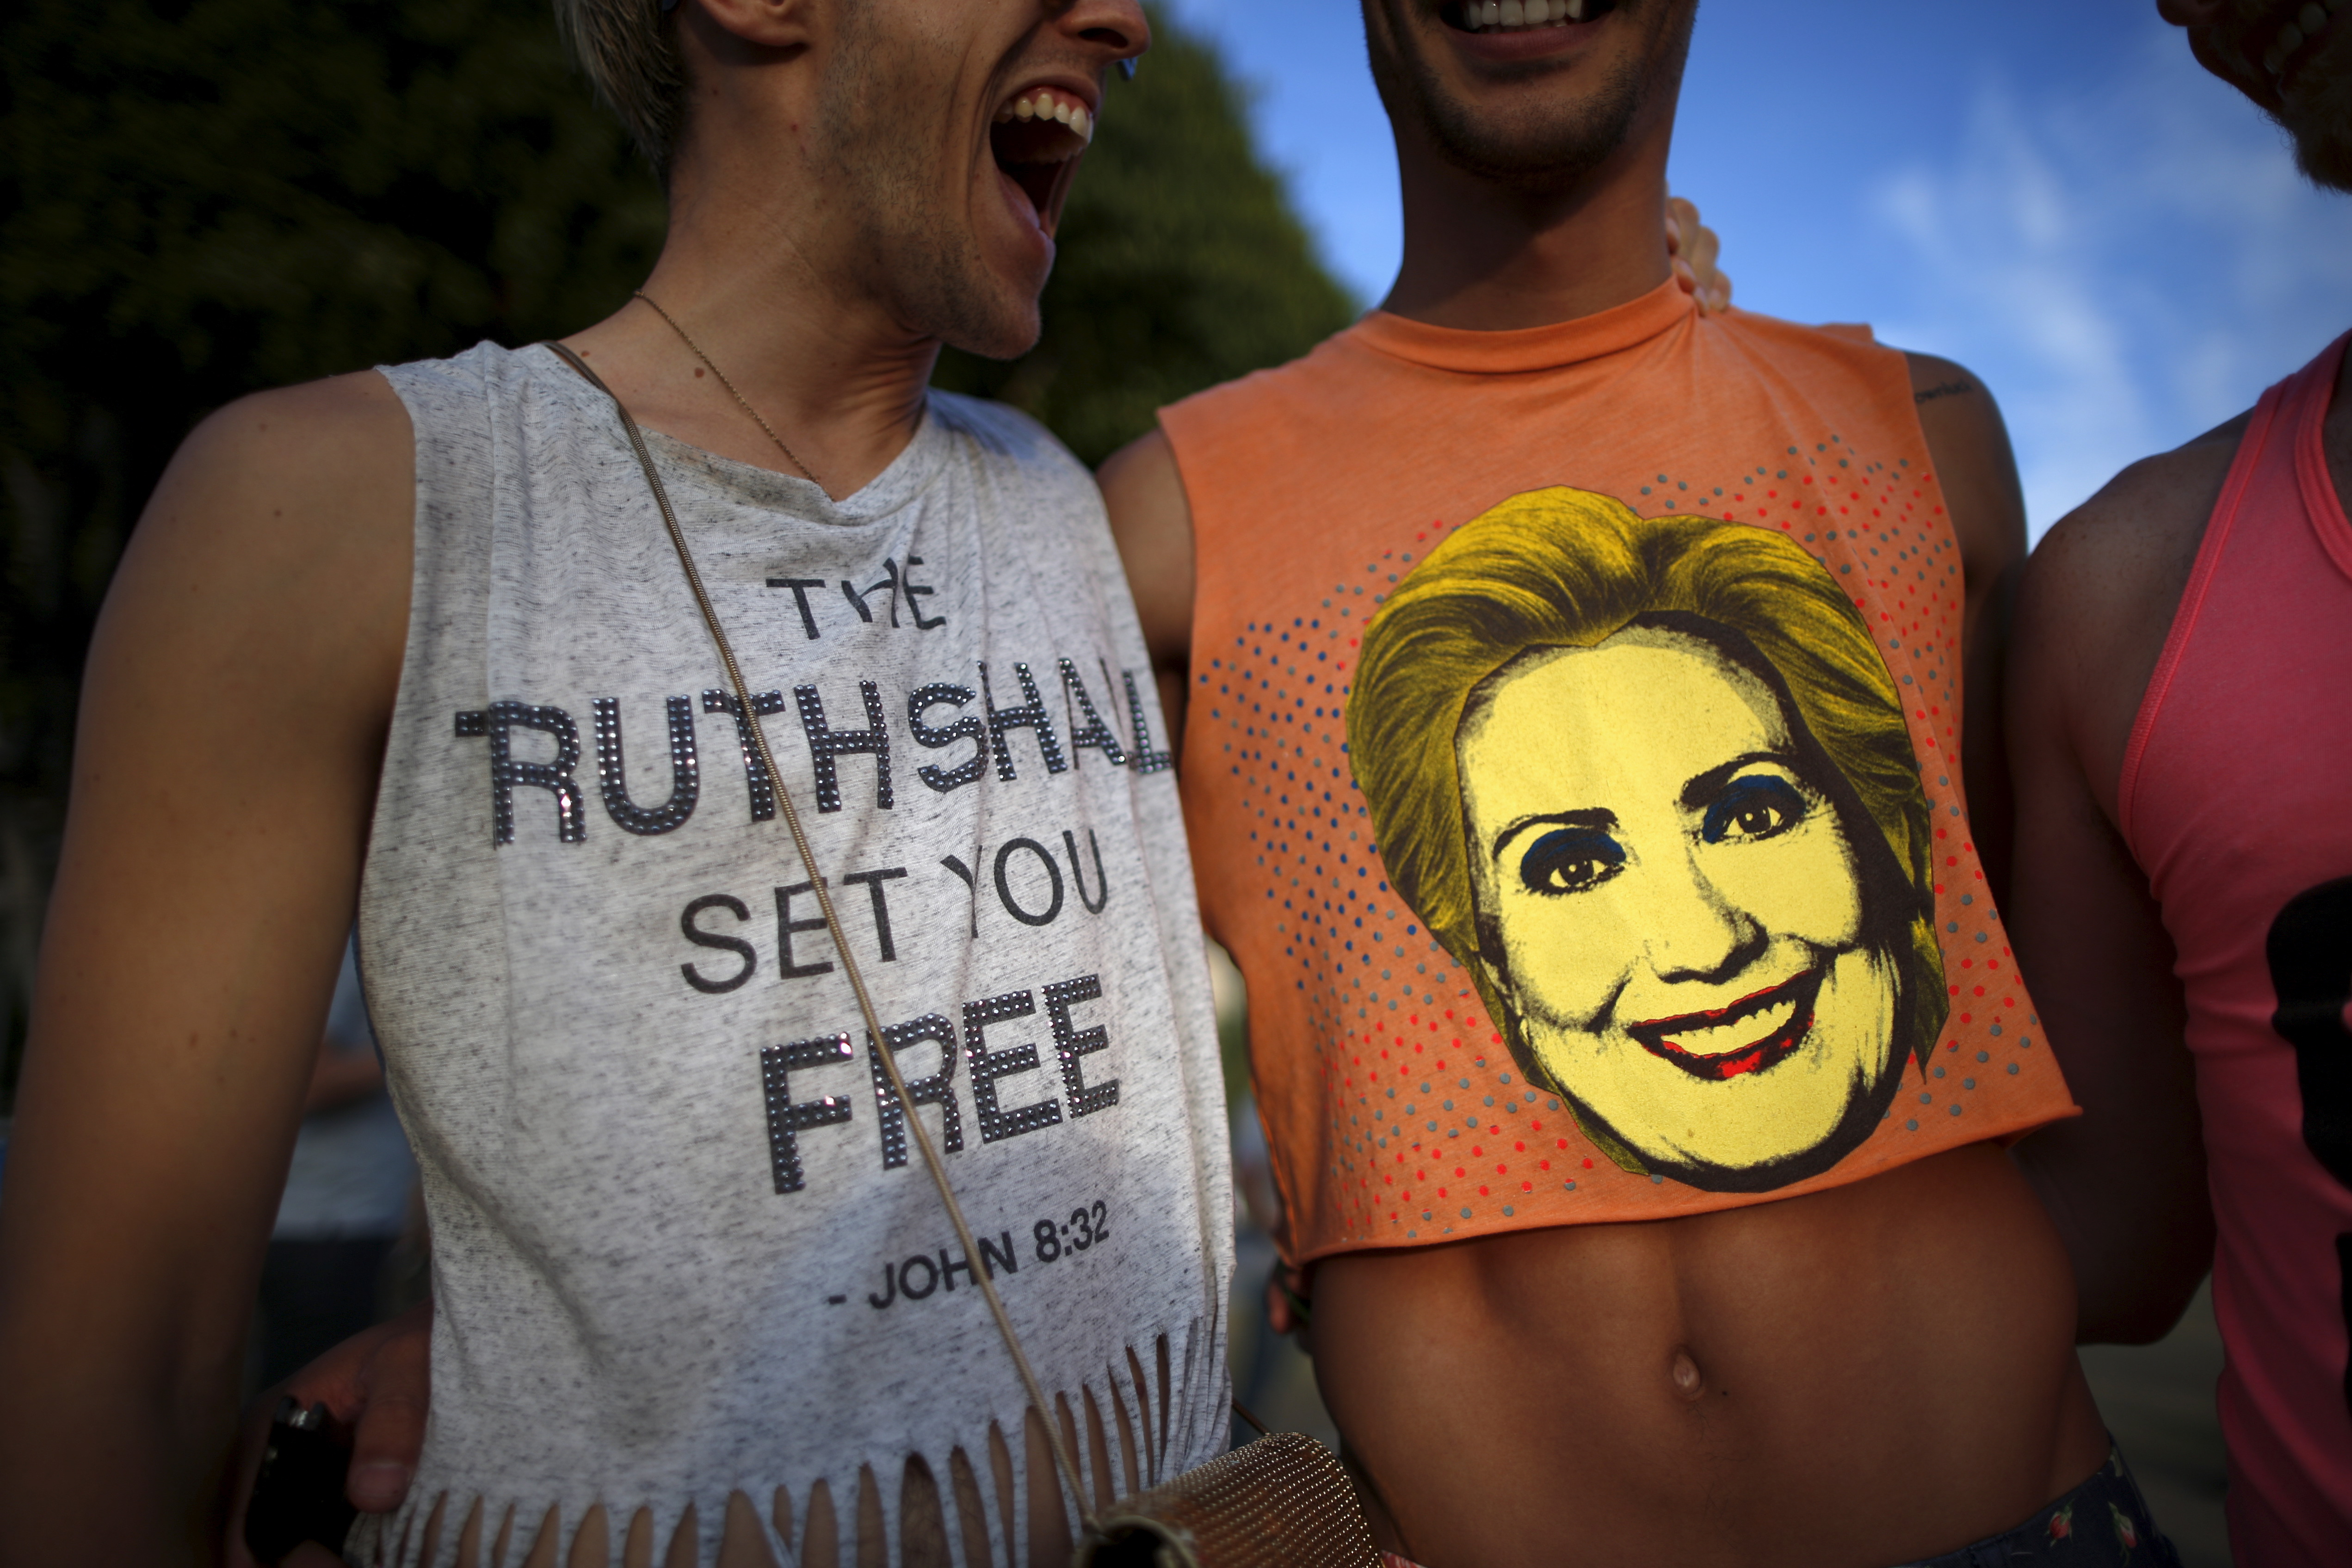 "A man wears a shirt saying ""The Ruth Shall Set You Free,"" a reference to U.S. Supreme Court Justice Ruth Bader Ginsburg, as he stands next to a man with a Hillary Clinton shirt at a celebration rally in West Hollywood, California, United States, June 26, 2015. The U.S. Supreme Court ruled on Friday that the U.S. Constitution provides same-sex couples the right to marry in a historic triumph for the American gay rights movement. REUTERS/Lucy Nicholson - RTX1I0JG"